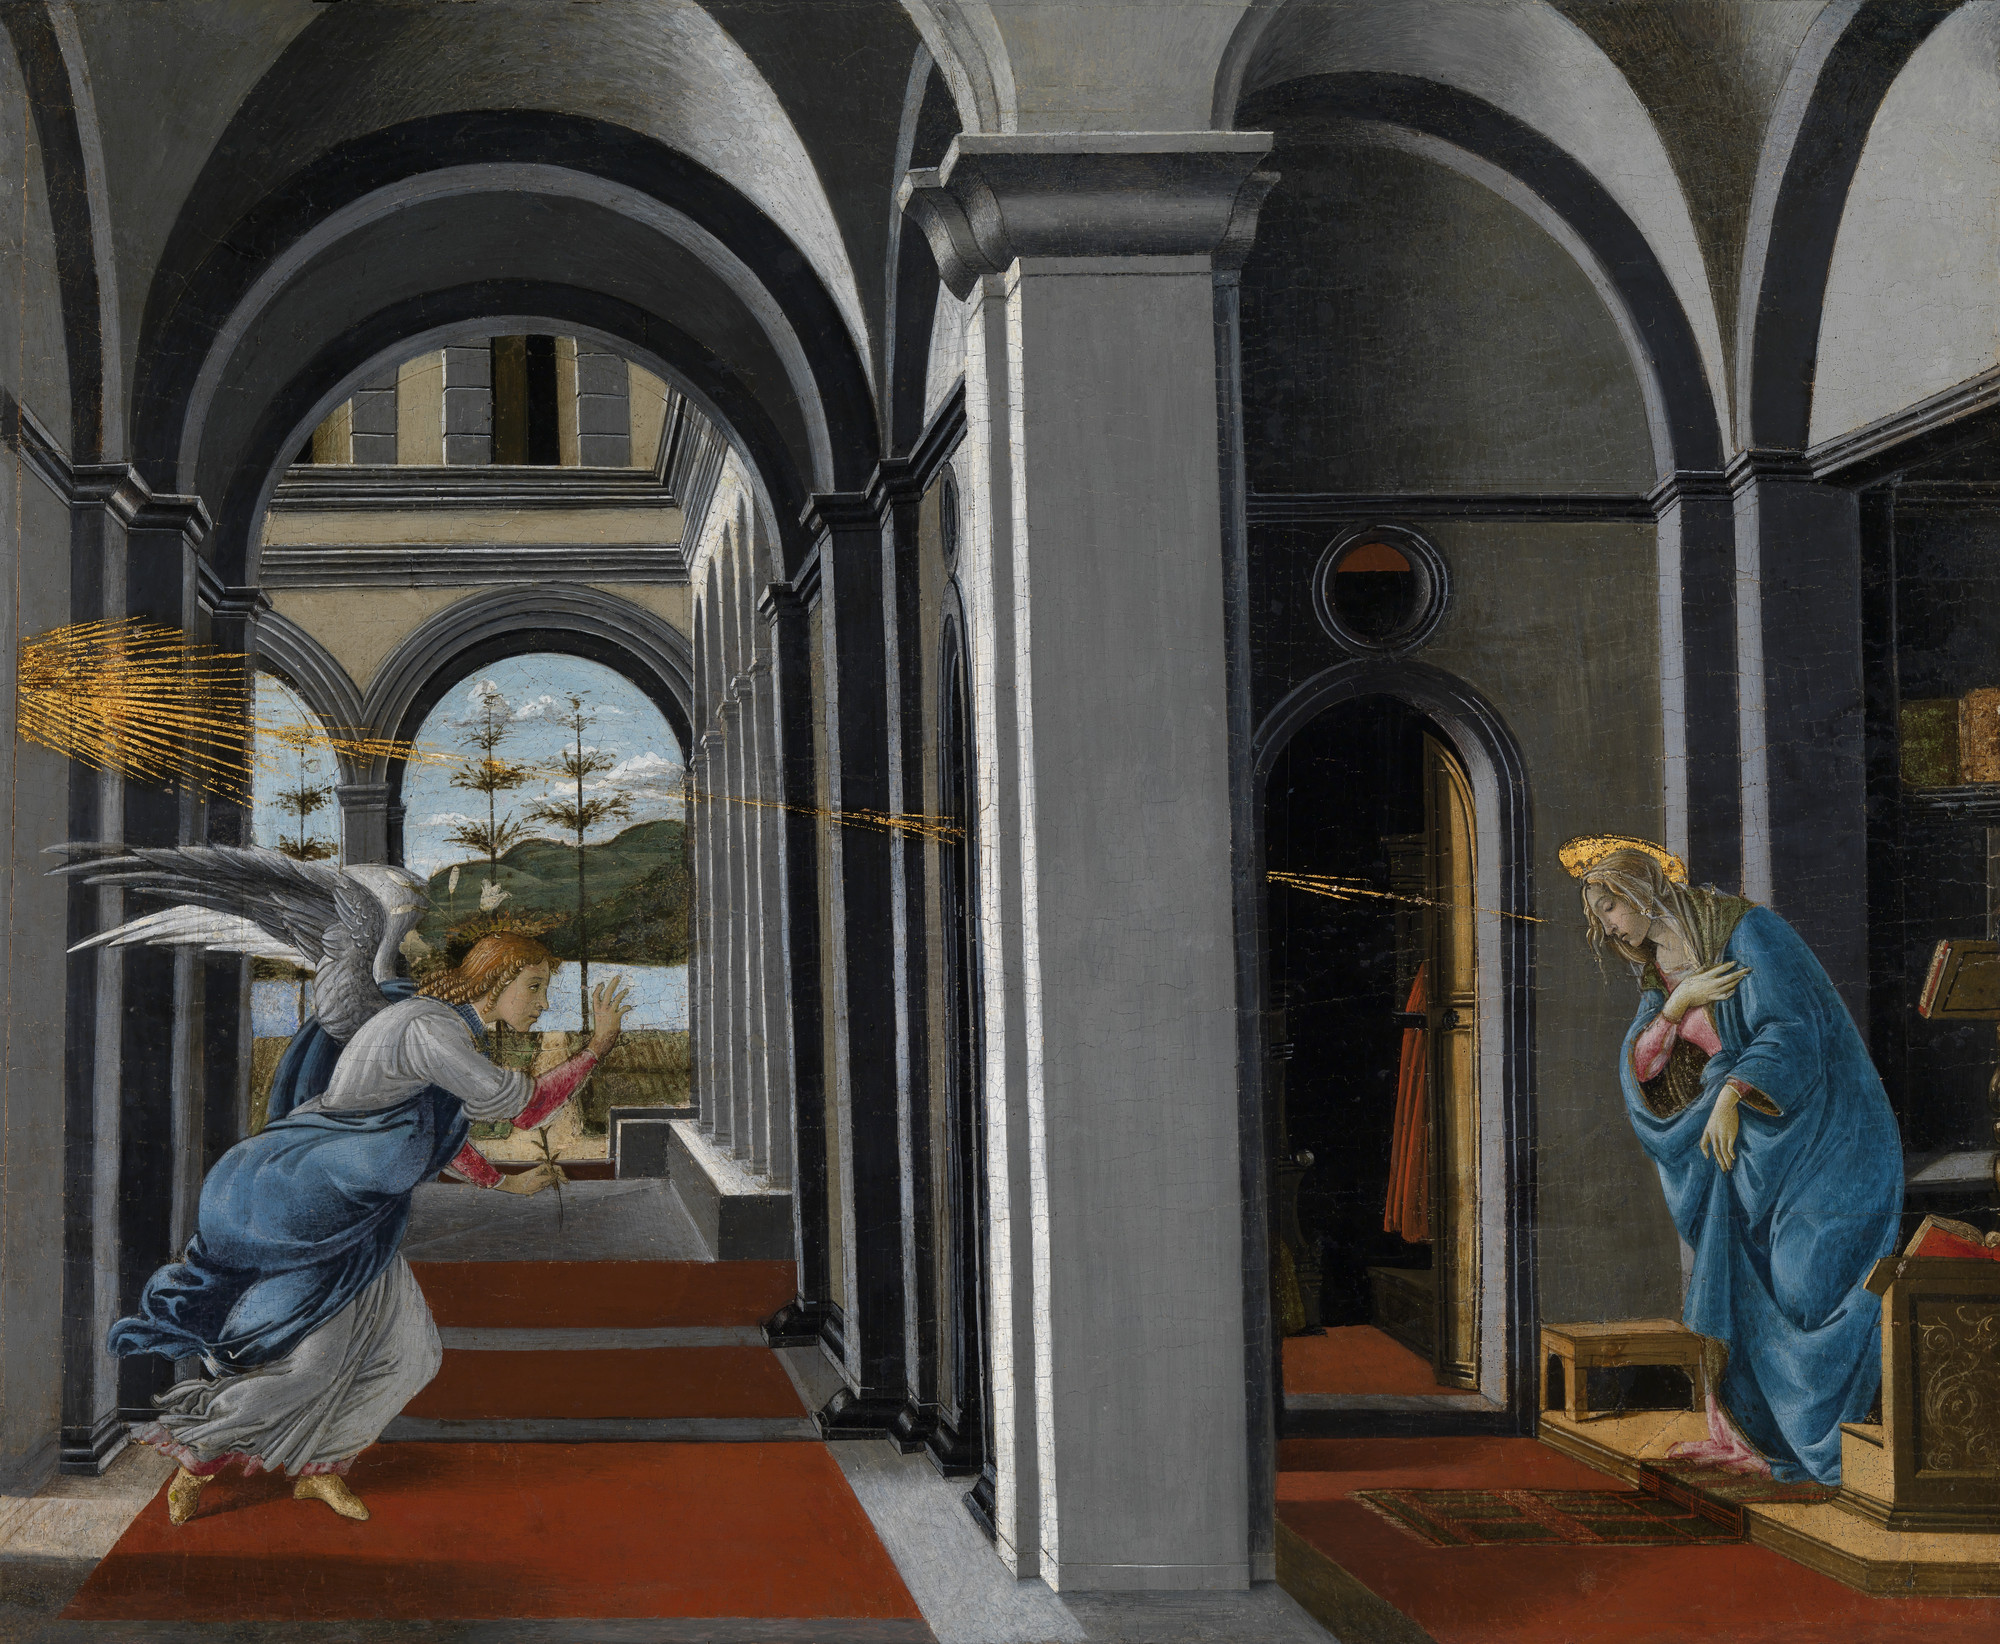 Annunciation by Boticelli